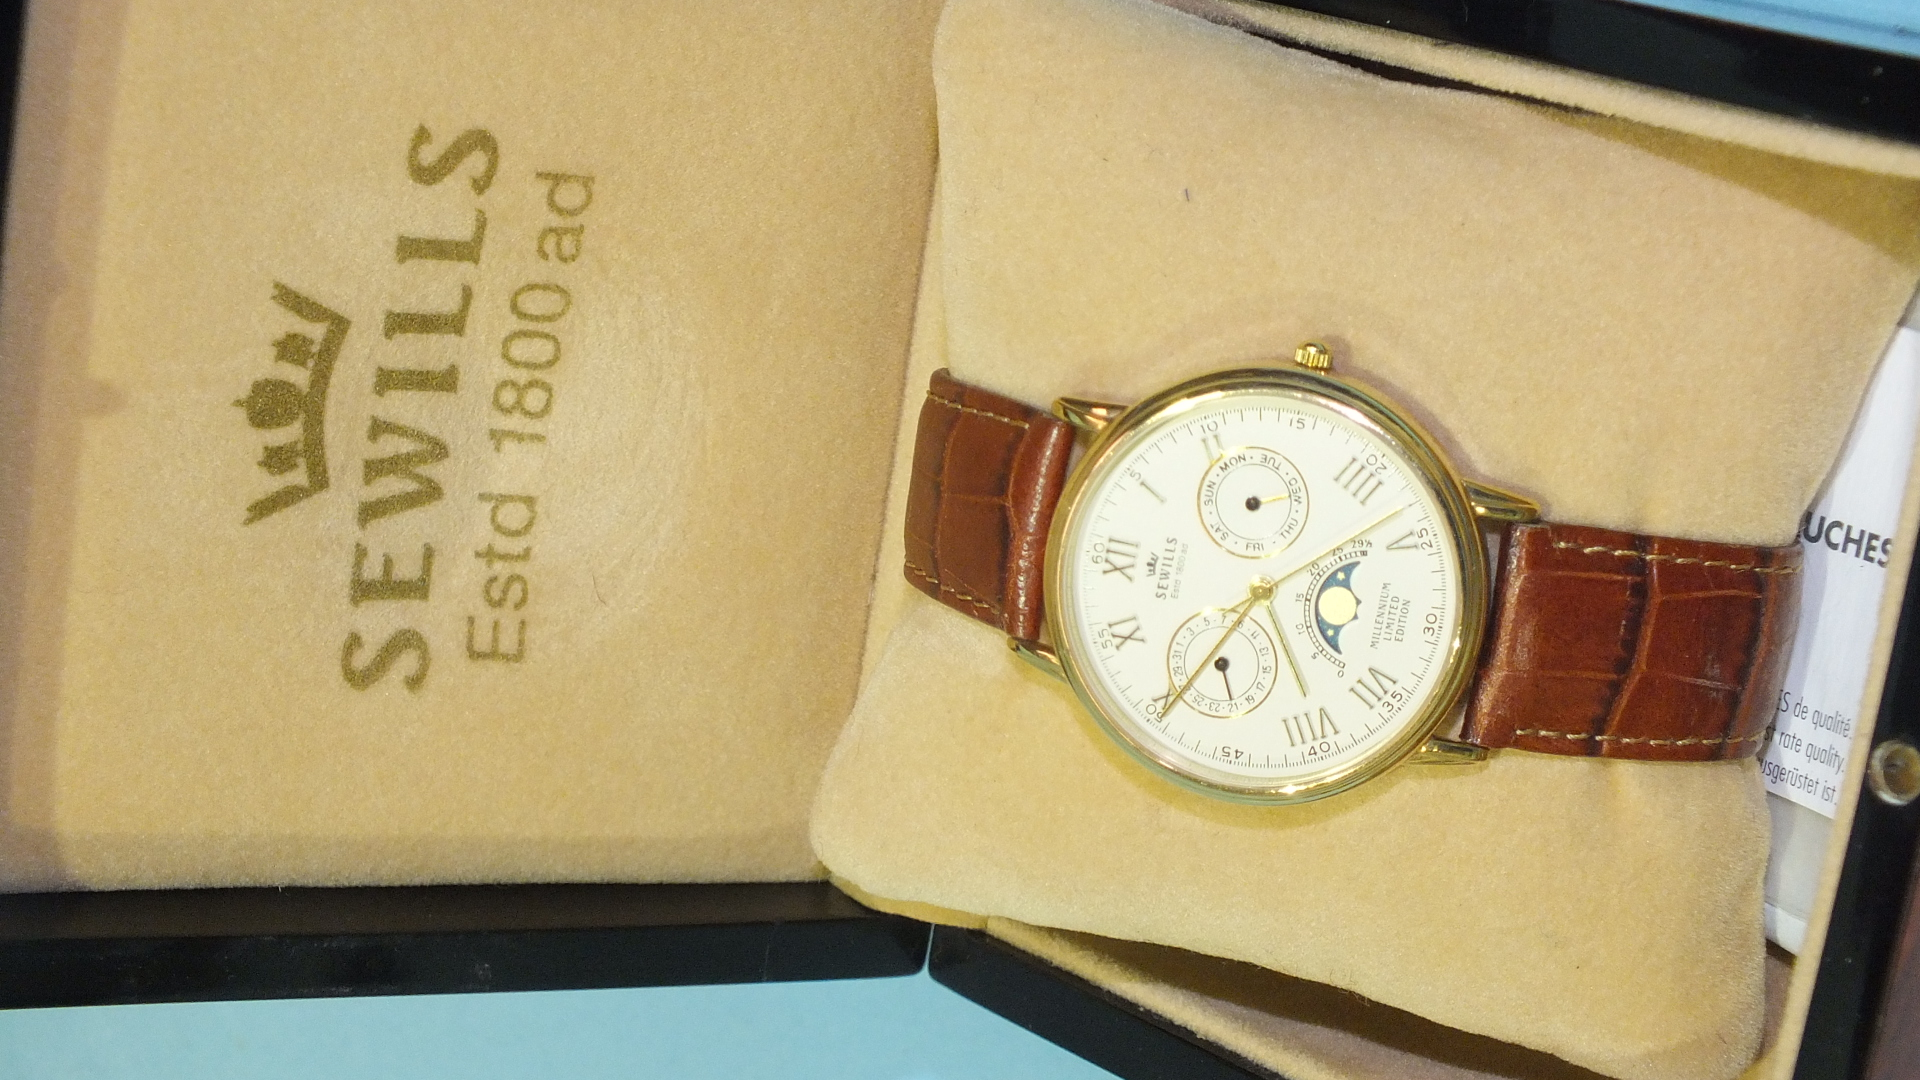 Lot 276 - Sewills Millennium calendar moon-phase wrist watch, no.194 of limited edition of 2000, the cream